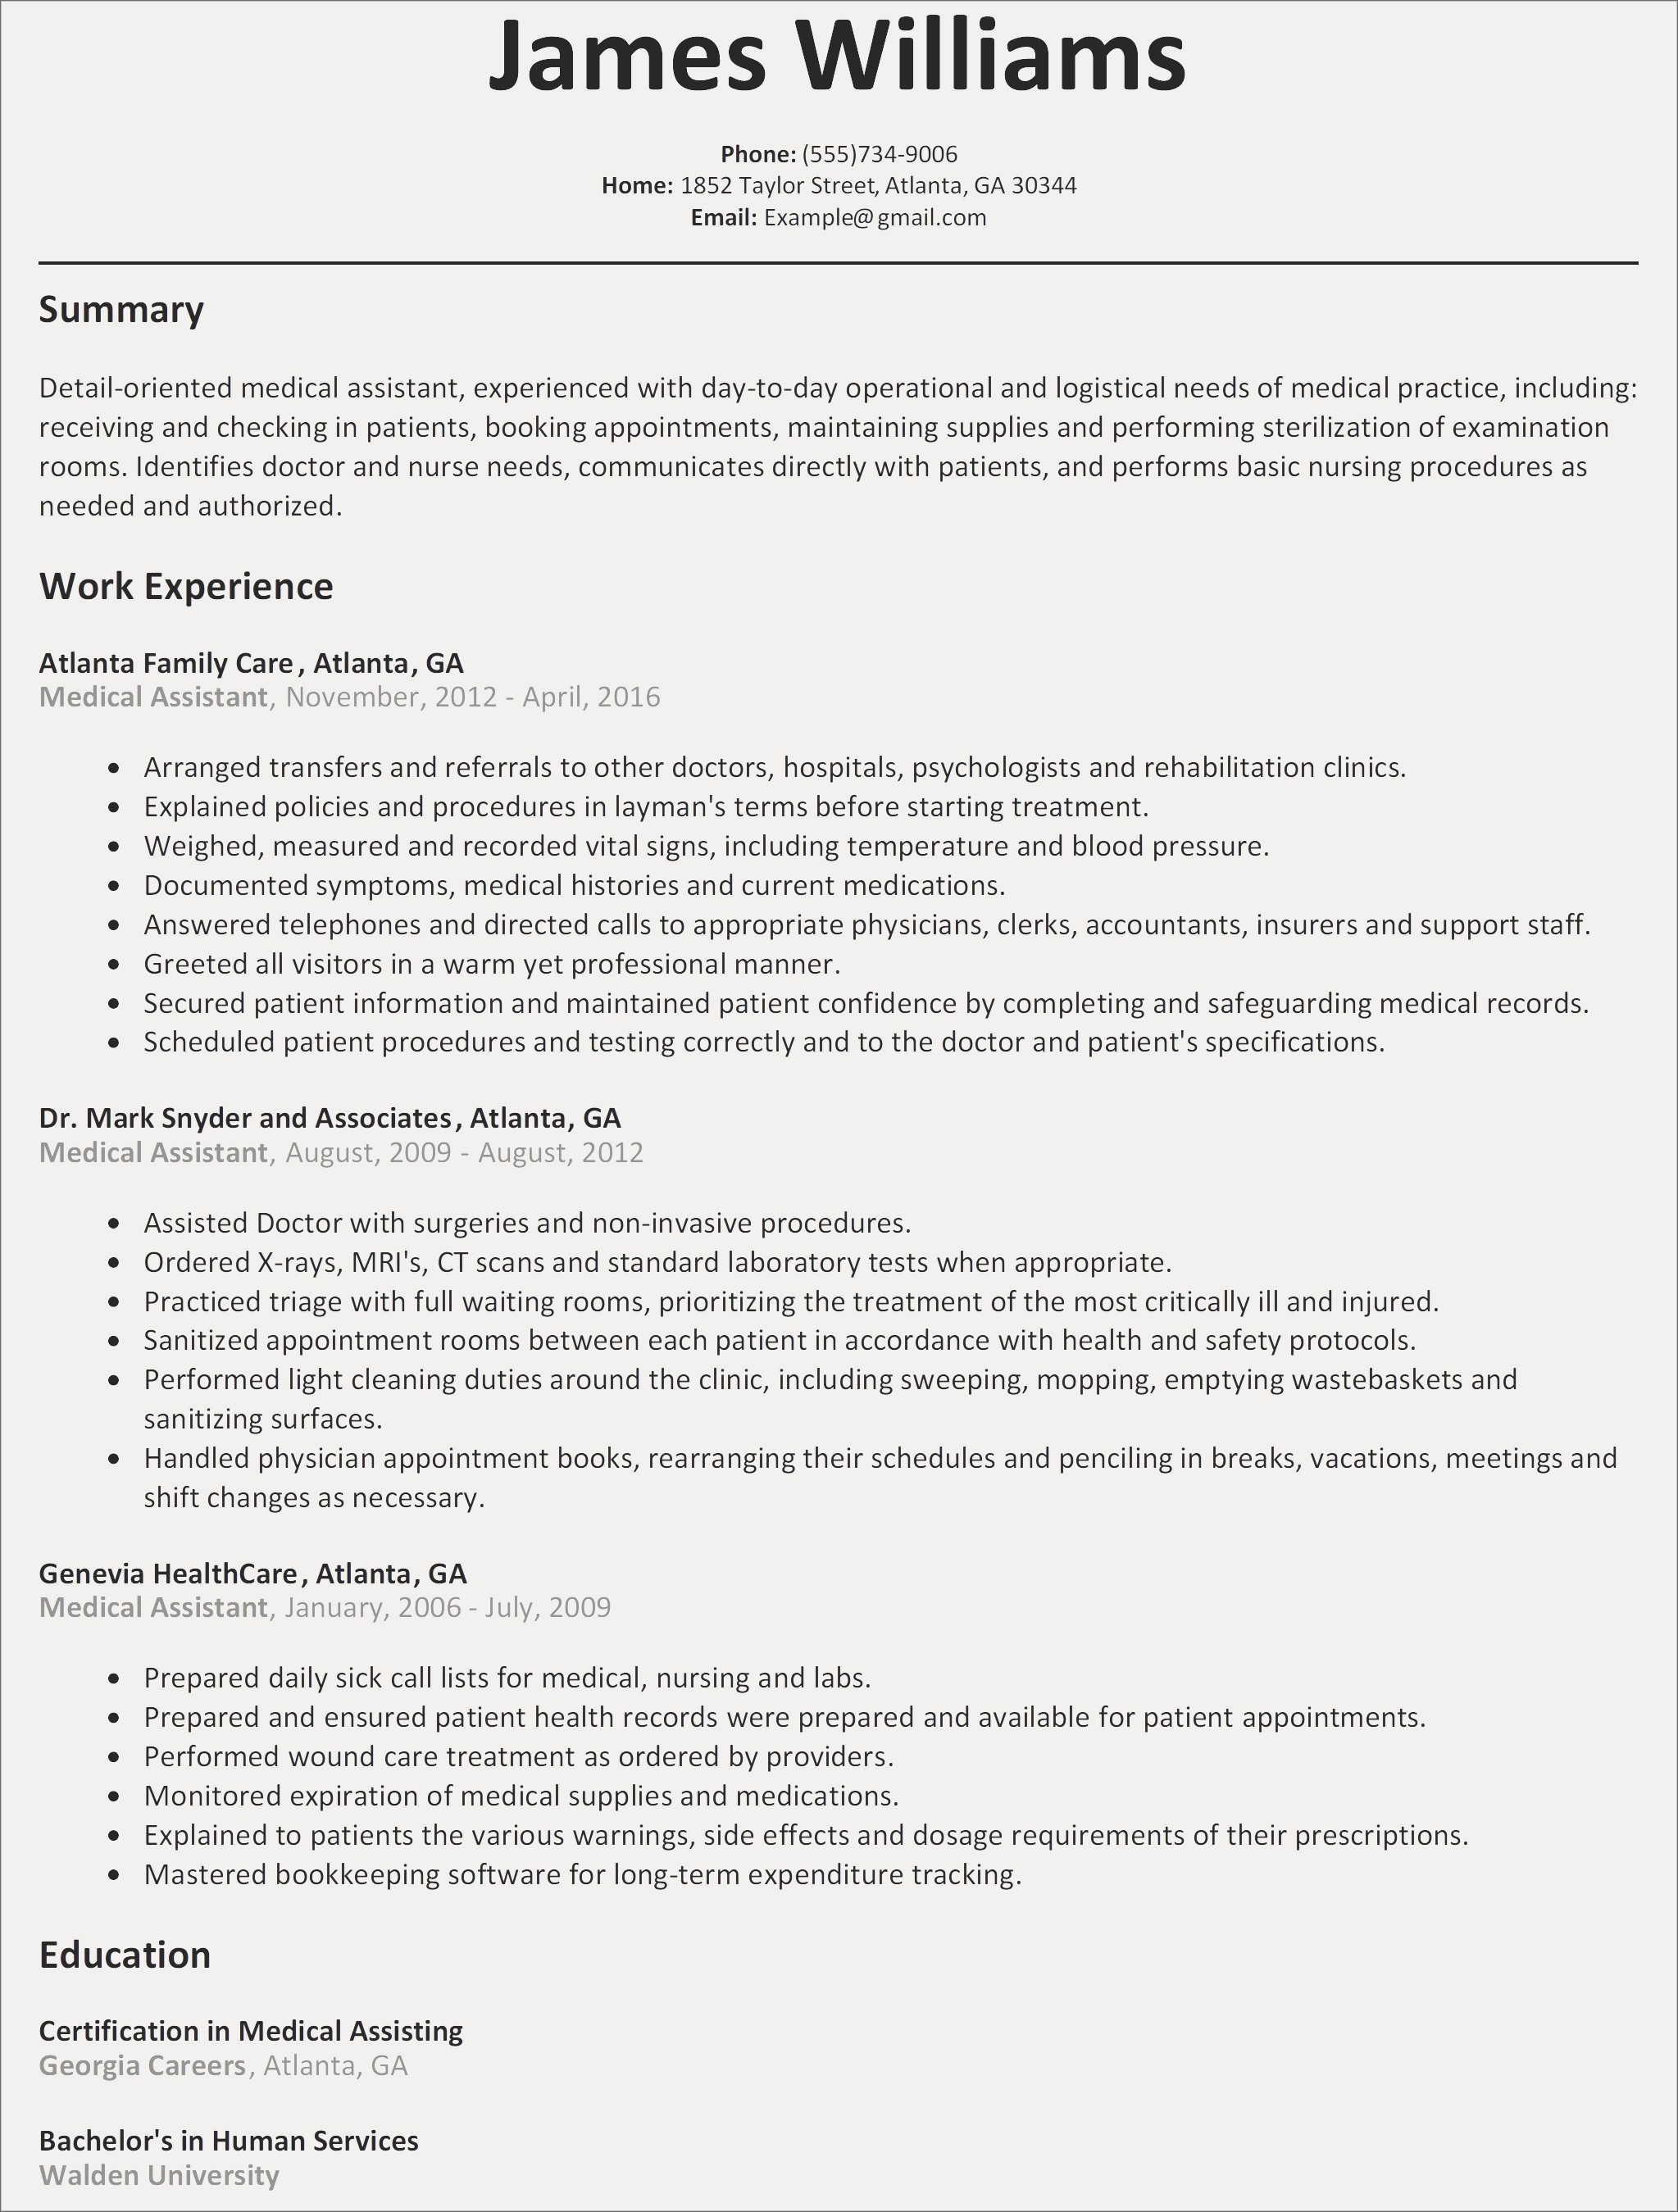 Nursing Resume format - Sample Resume for Rn Resume Resume Examples D0dwb9jmgl